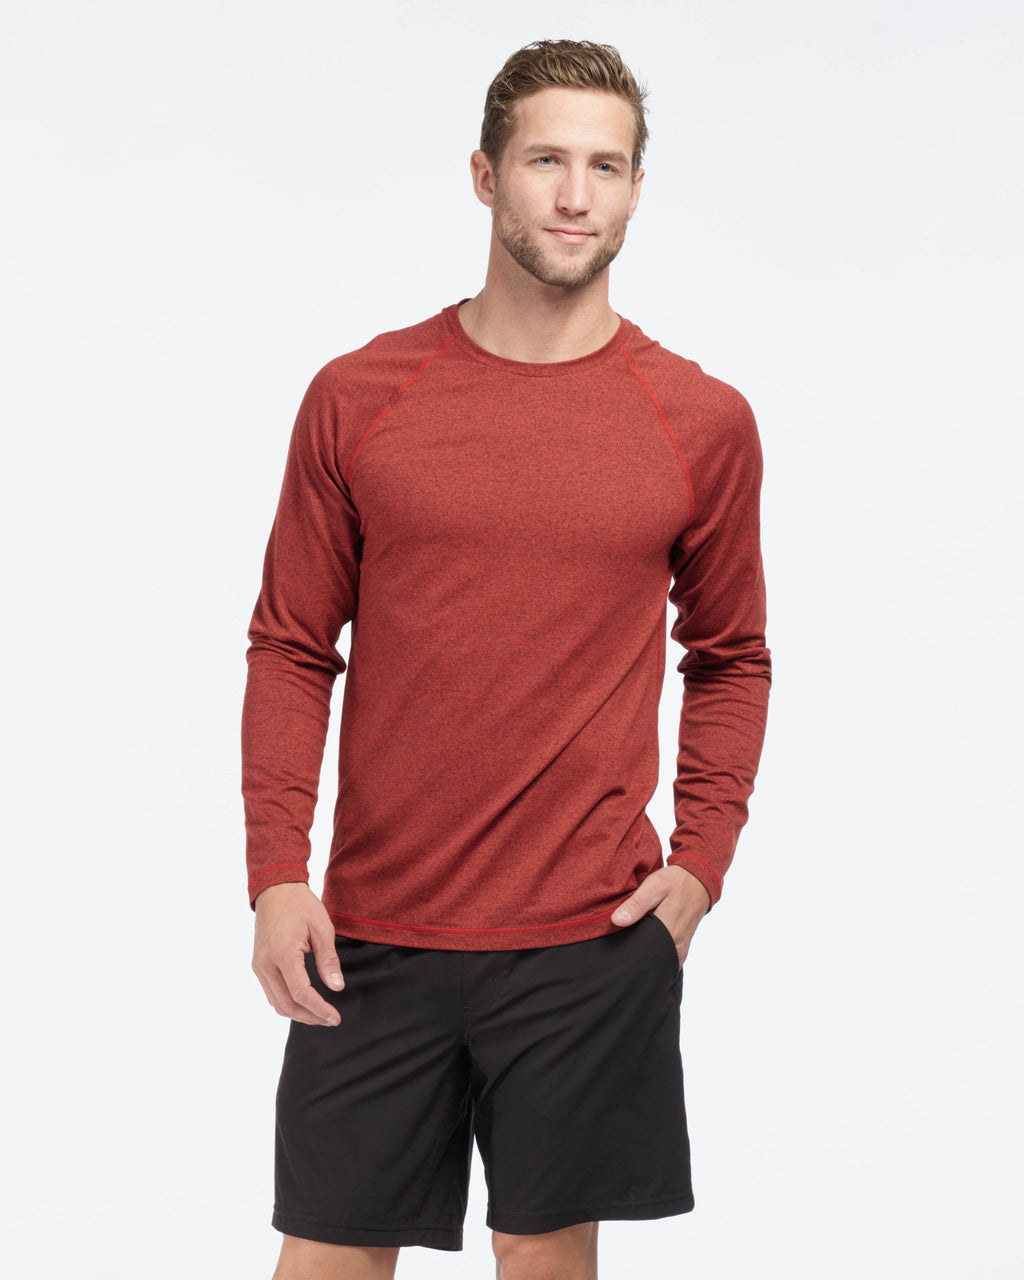 Reign Long Sleeve, Cherry Red Heather